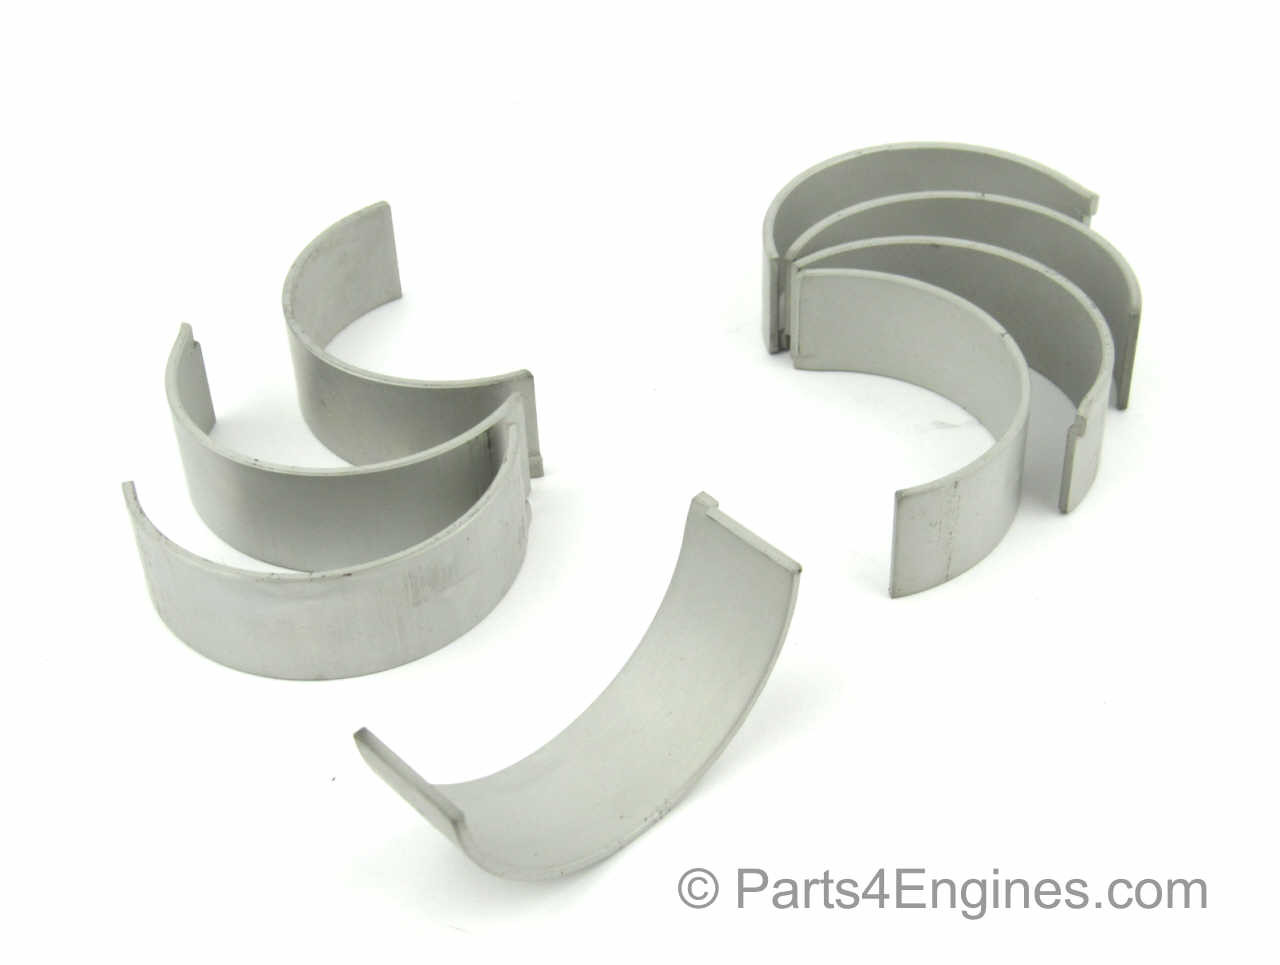 Volvo Penta TMD22 Connecting rod bearings from parts4engines.com